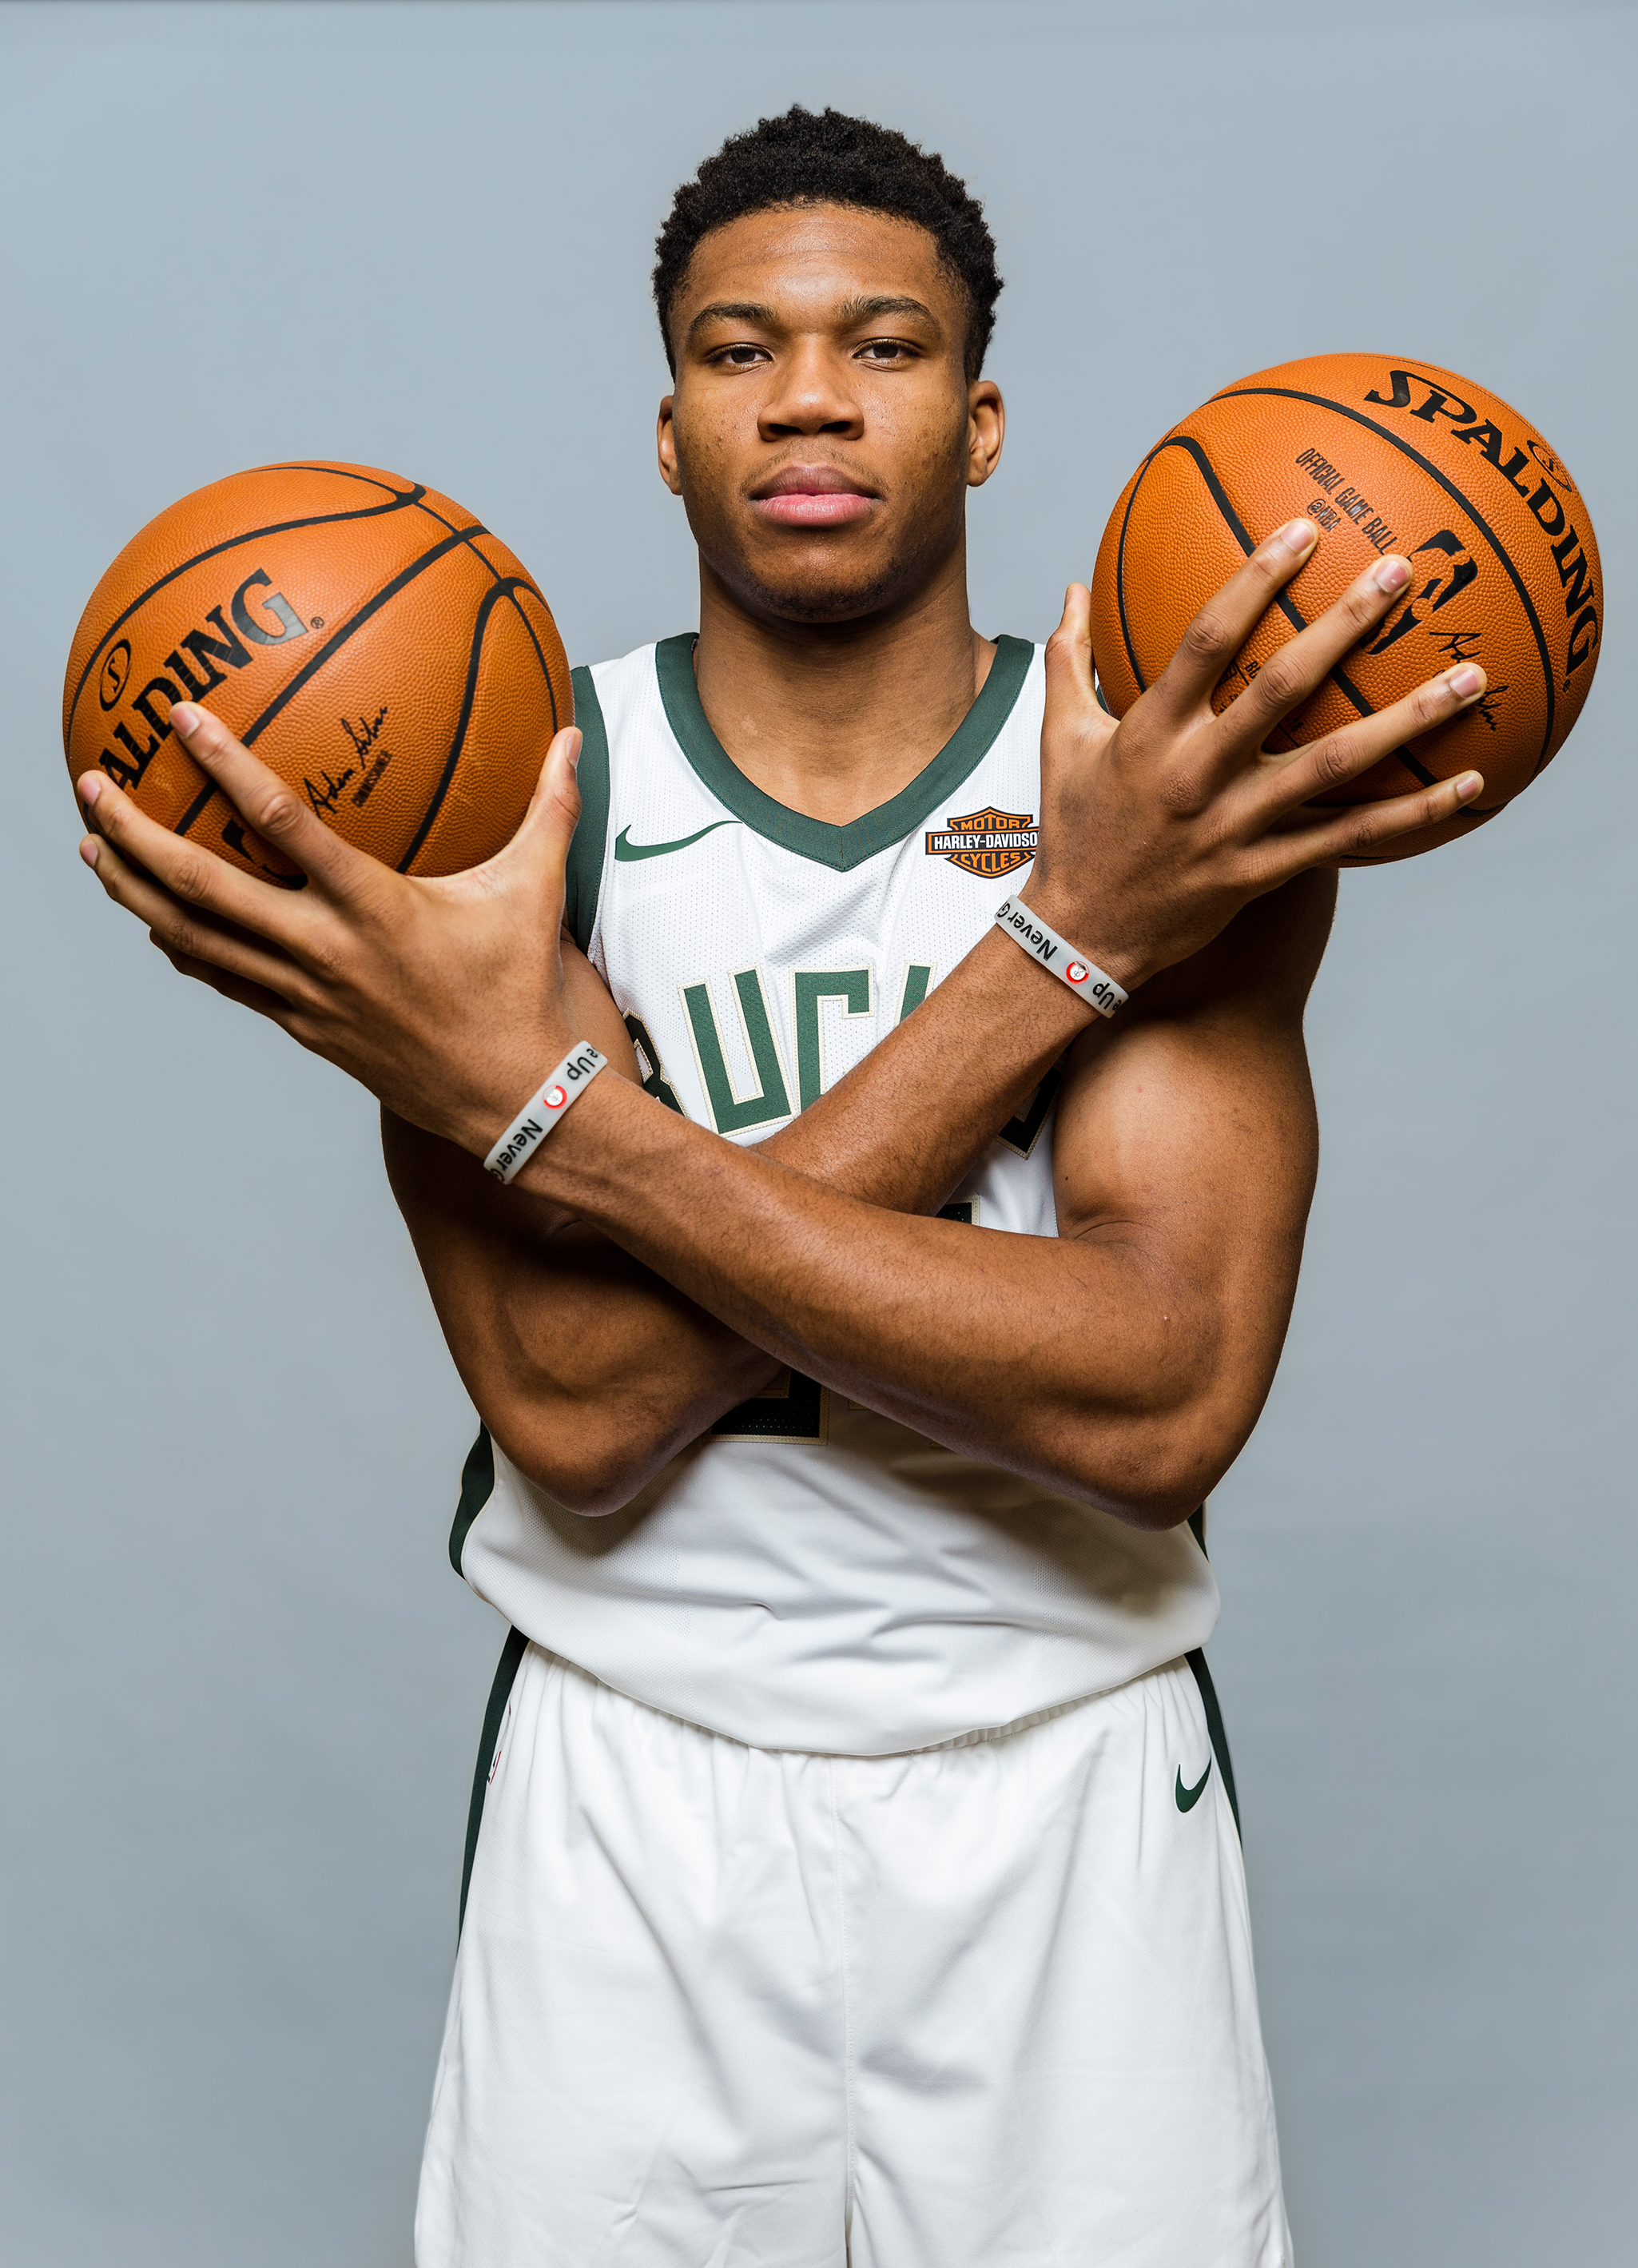 Giannis Antetokounmpo of the Milwaukee Bucks on Sept. 14, 2017.